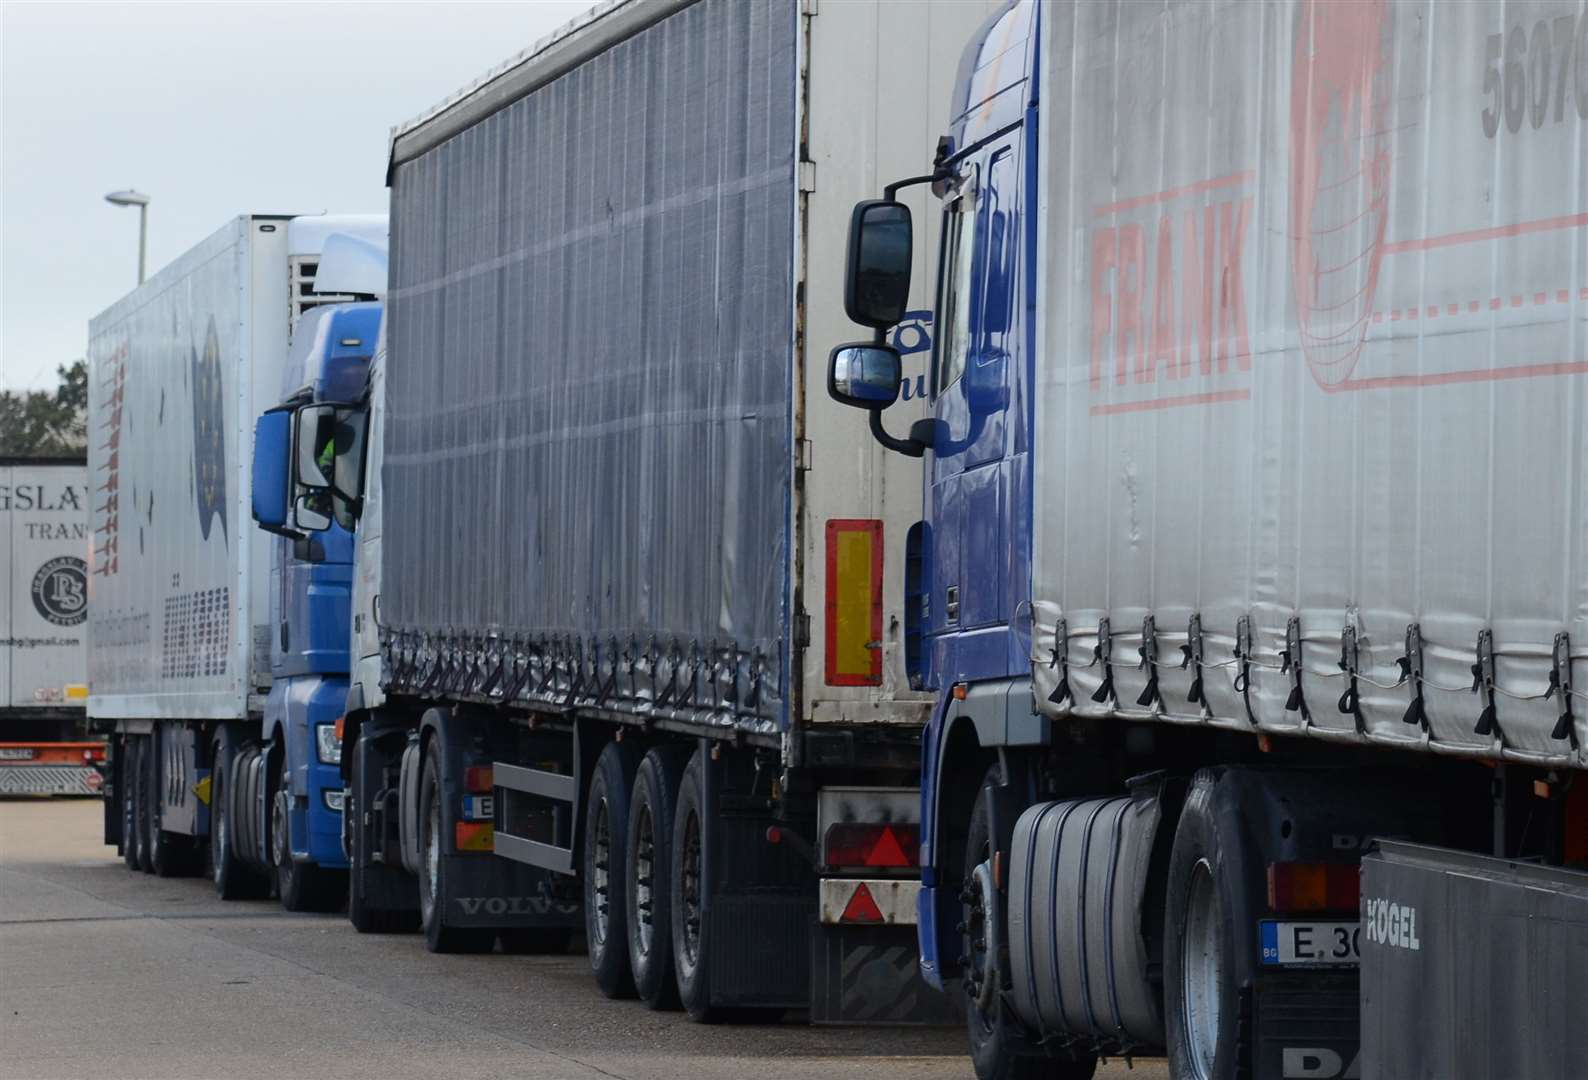 The Sevington site will hold up to 2,000 lorries